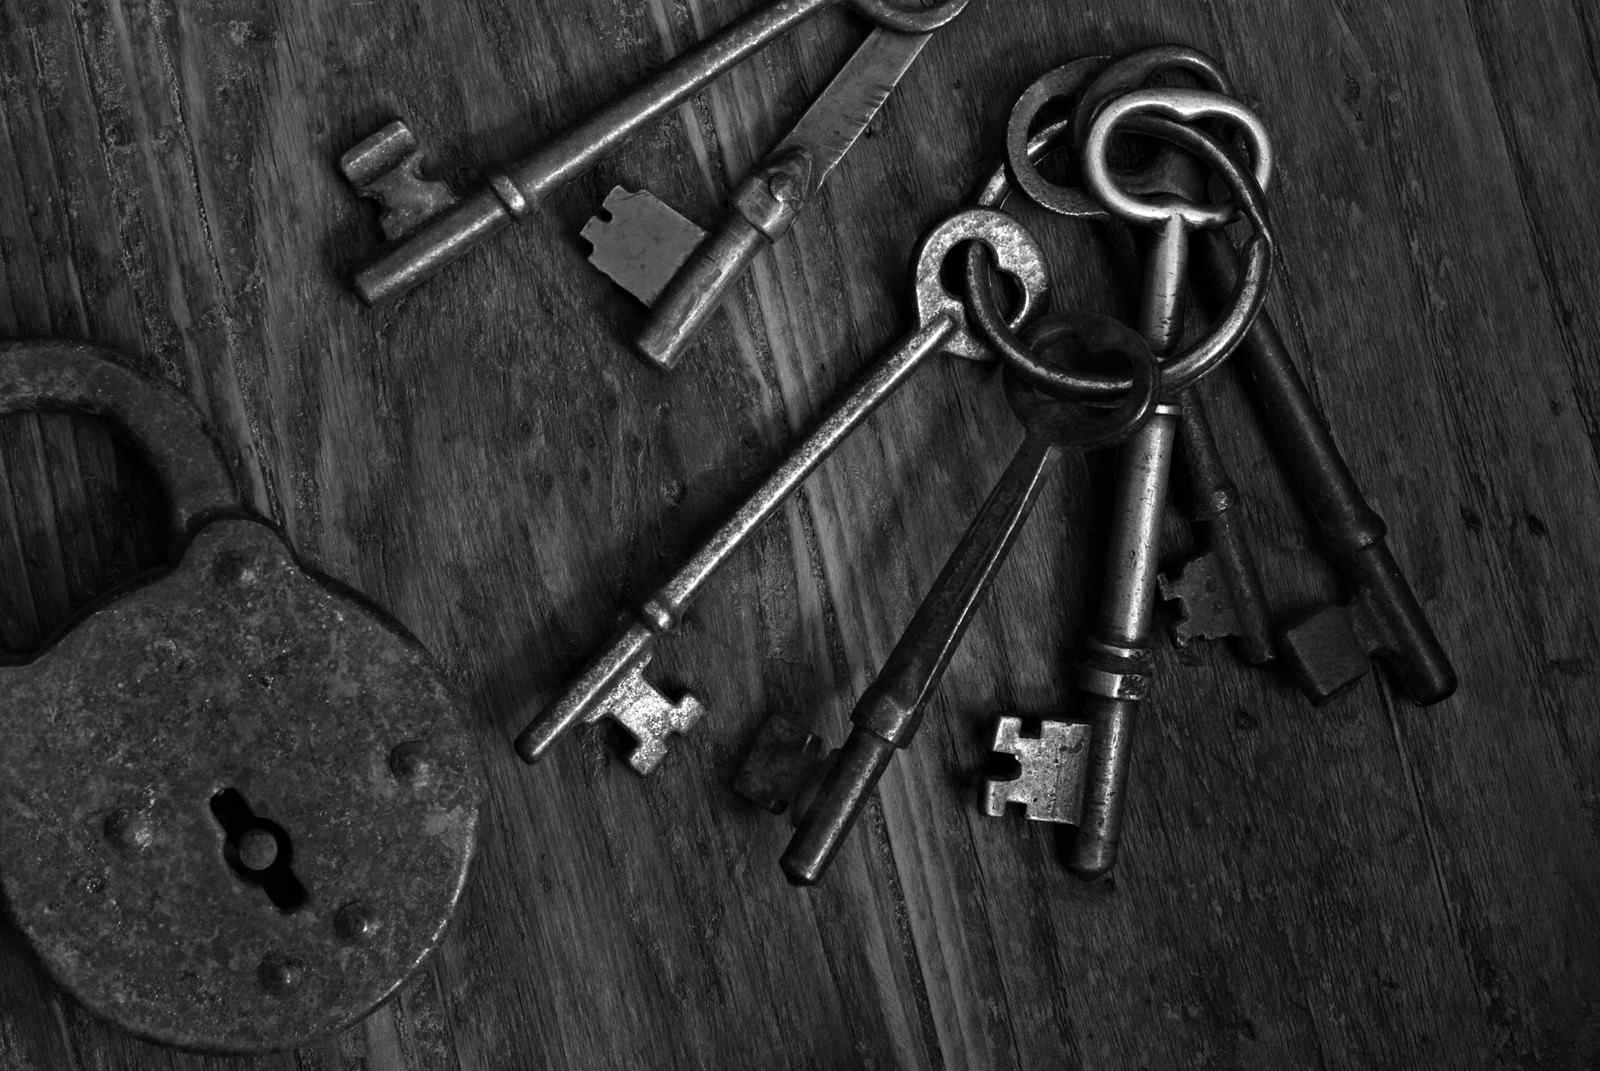 image of keys symbolizing career planning keys